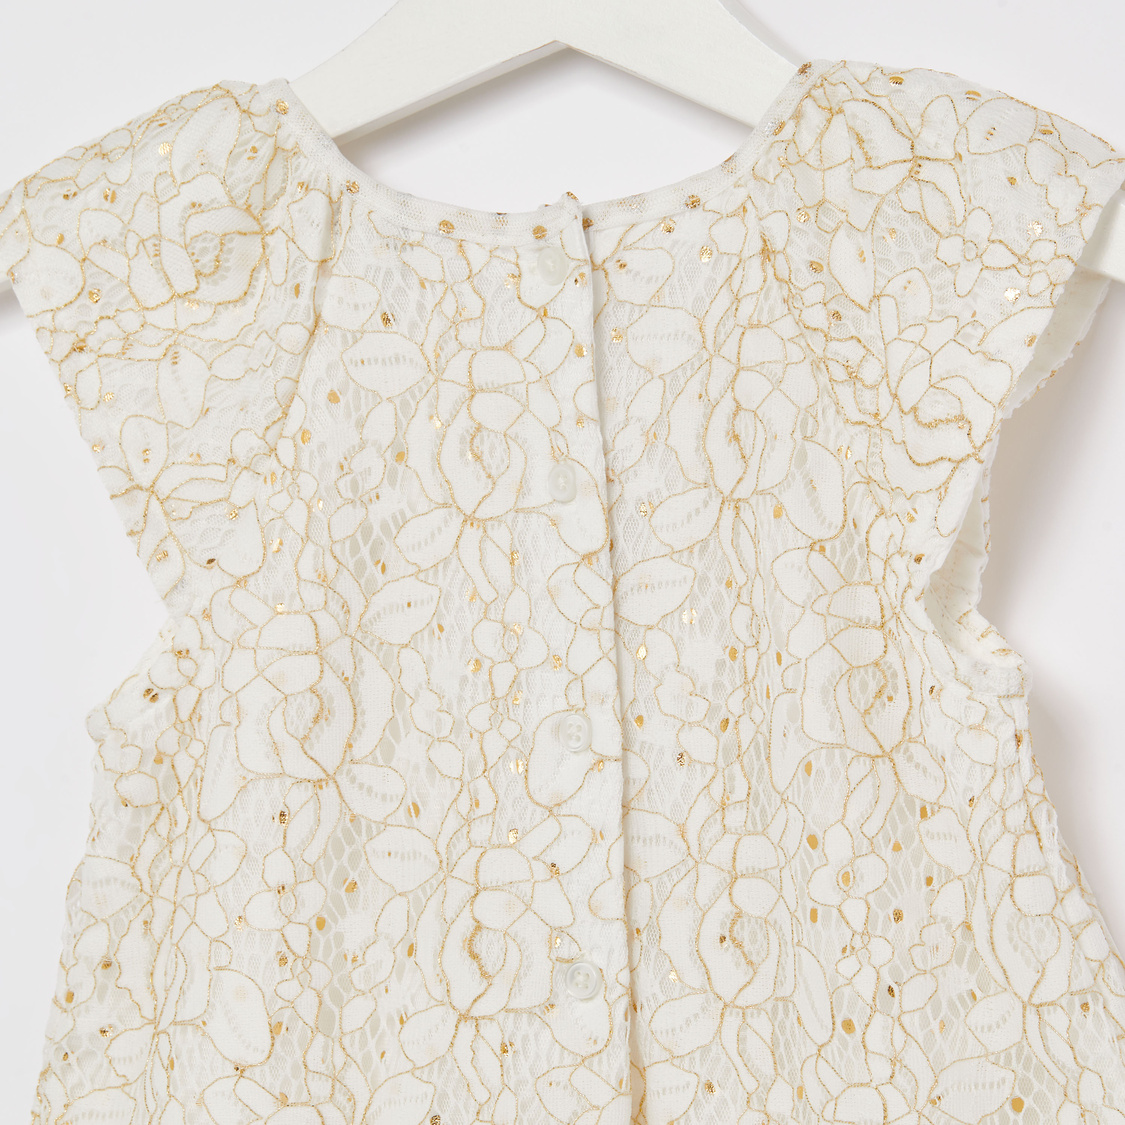 Embellished Romper with Lace Detail and Cap Sleeves